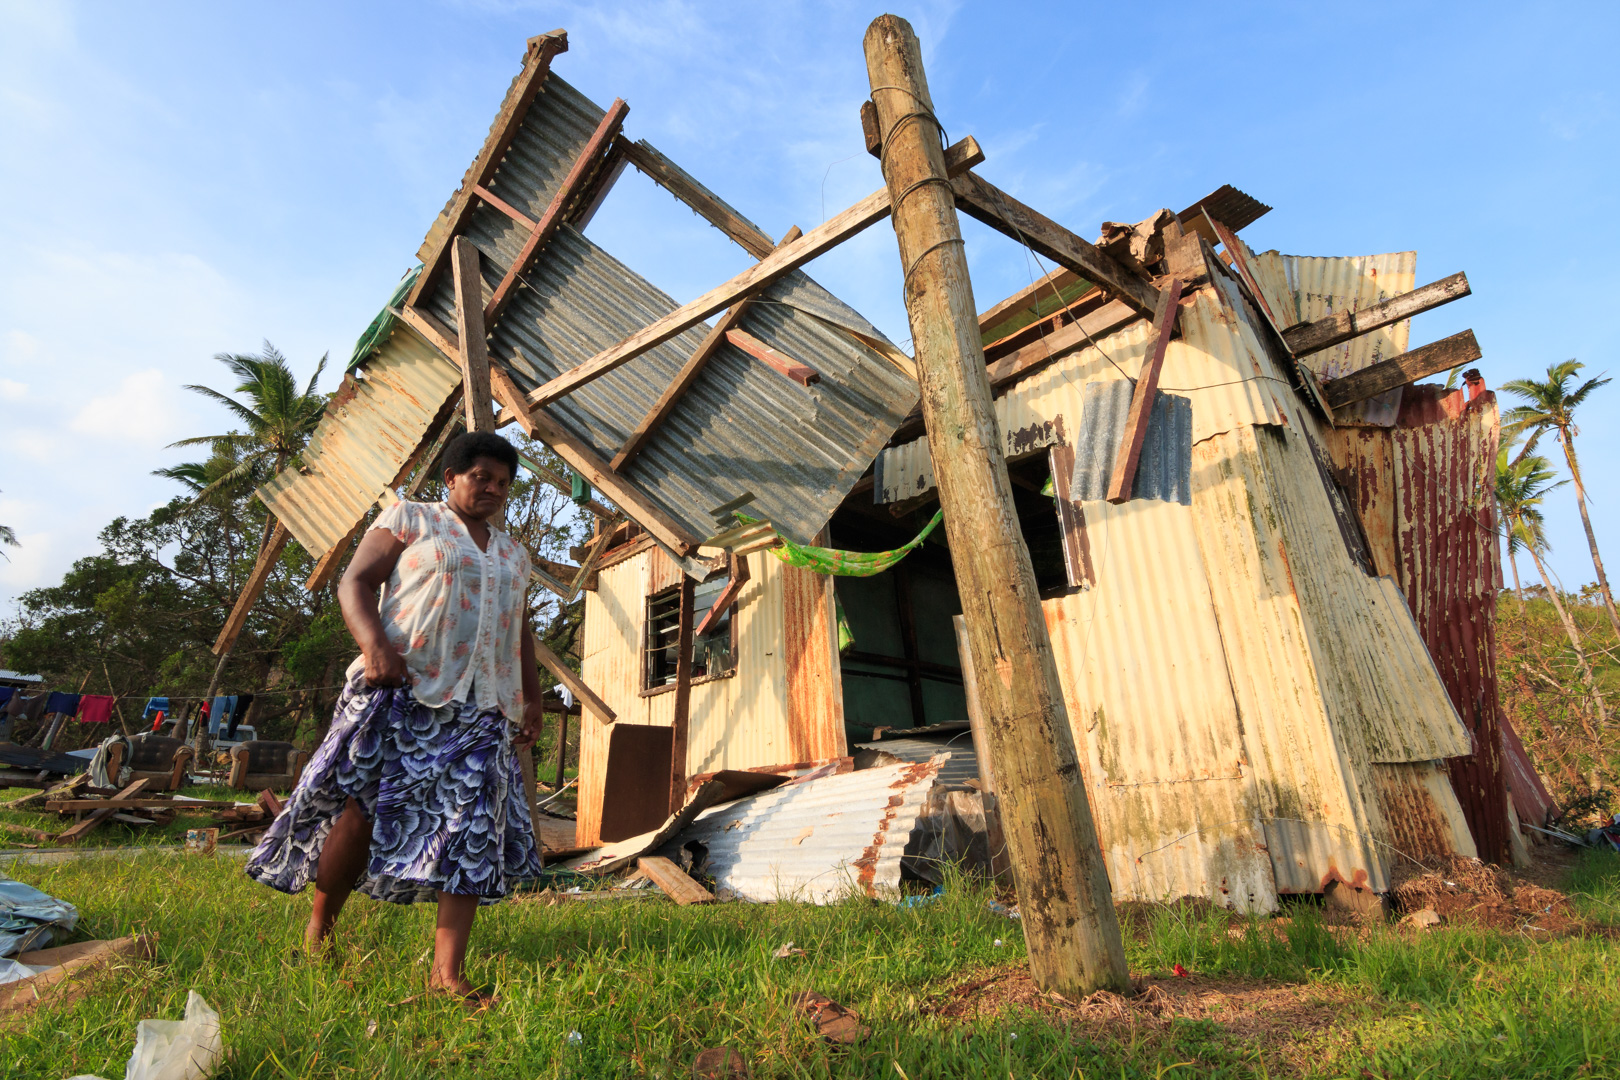 A woman from the village of Namena in Tailevu, Fiji, walks in front of her damaged house after Cyclone Winston swept through the area on February 20, 2016.